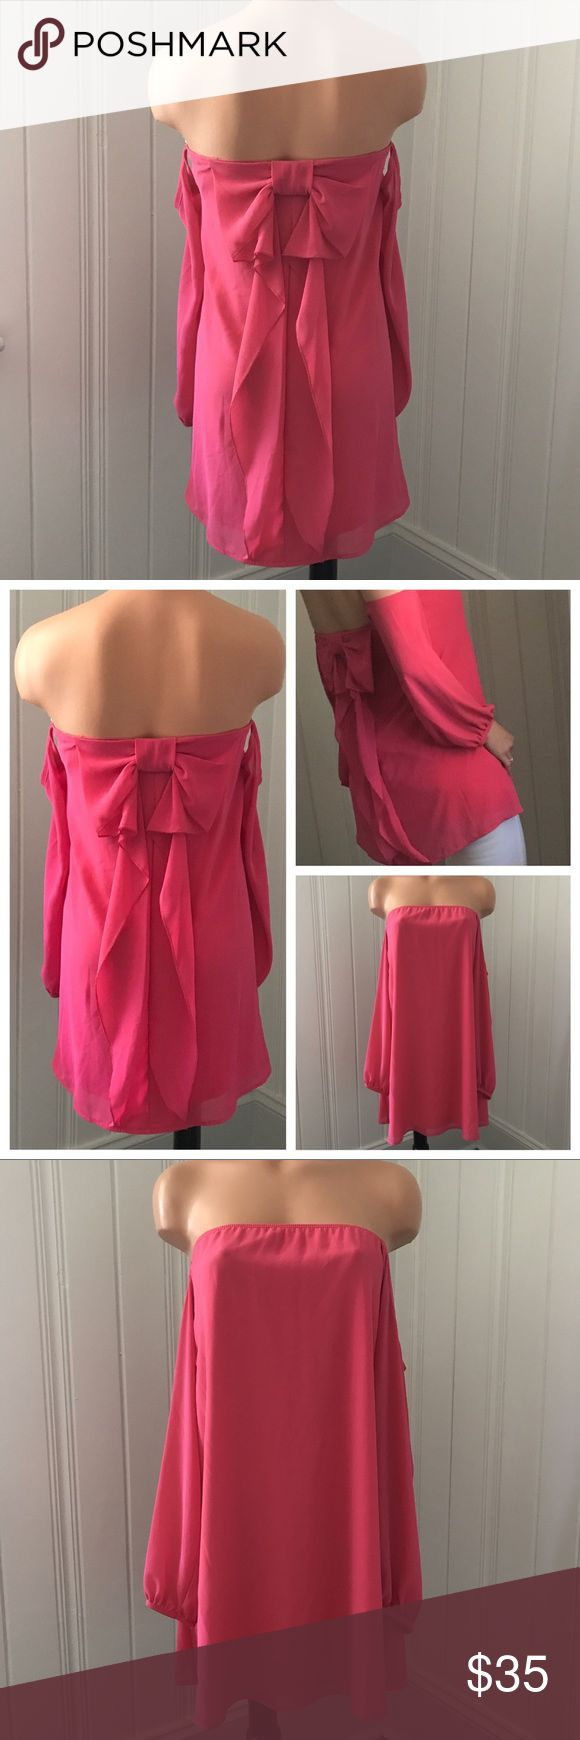 Cold Shoulder Bow Back Chiffon Strapless Blouse S Hot Pink Cold Shoulder Bow Back Chiffon Strapless Blouse S  New with tags. Gorgeous for spring/summer!   Size - Small  Approx Measurements: Bust - 28in -- has an elastic band Length - 25in Sage Tops Blouses